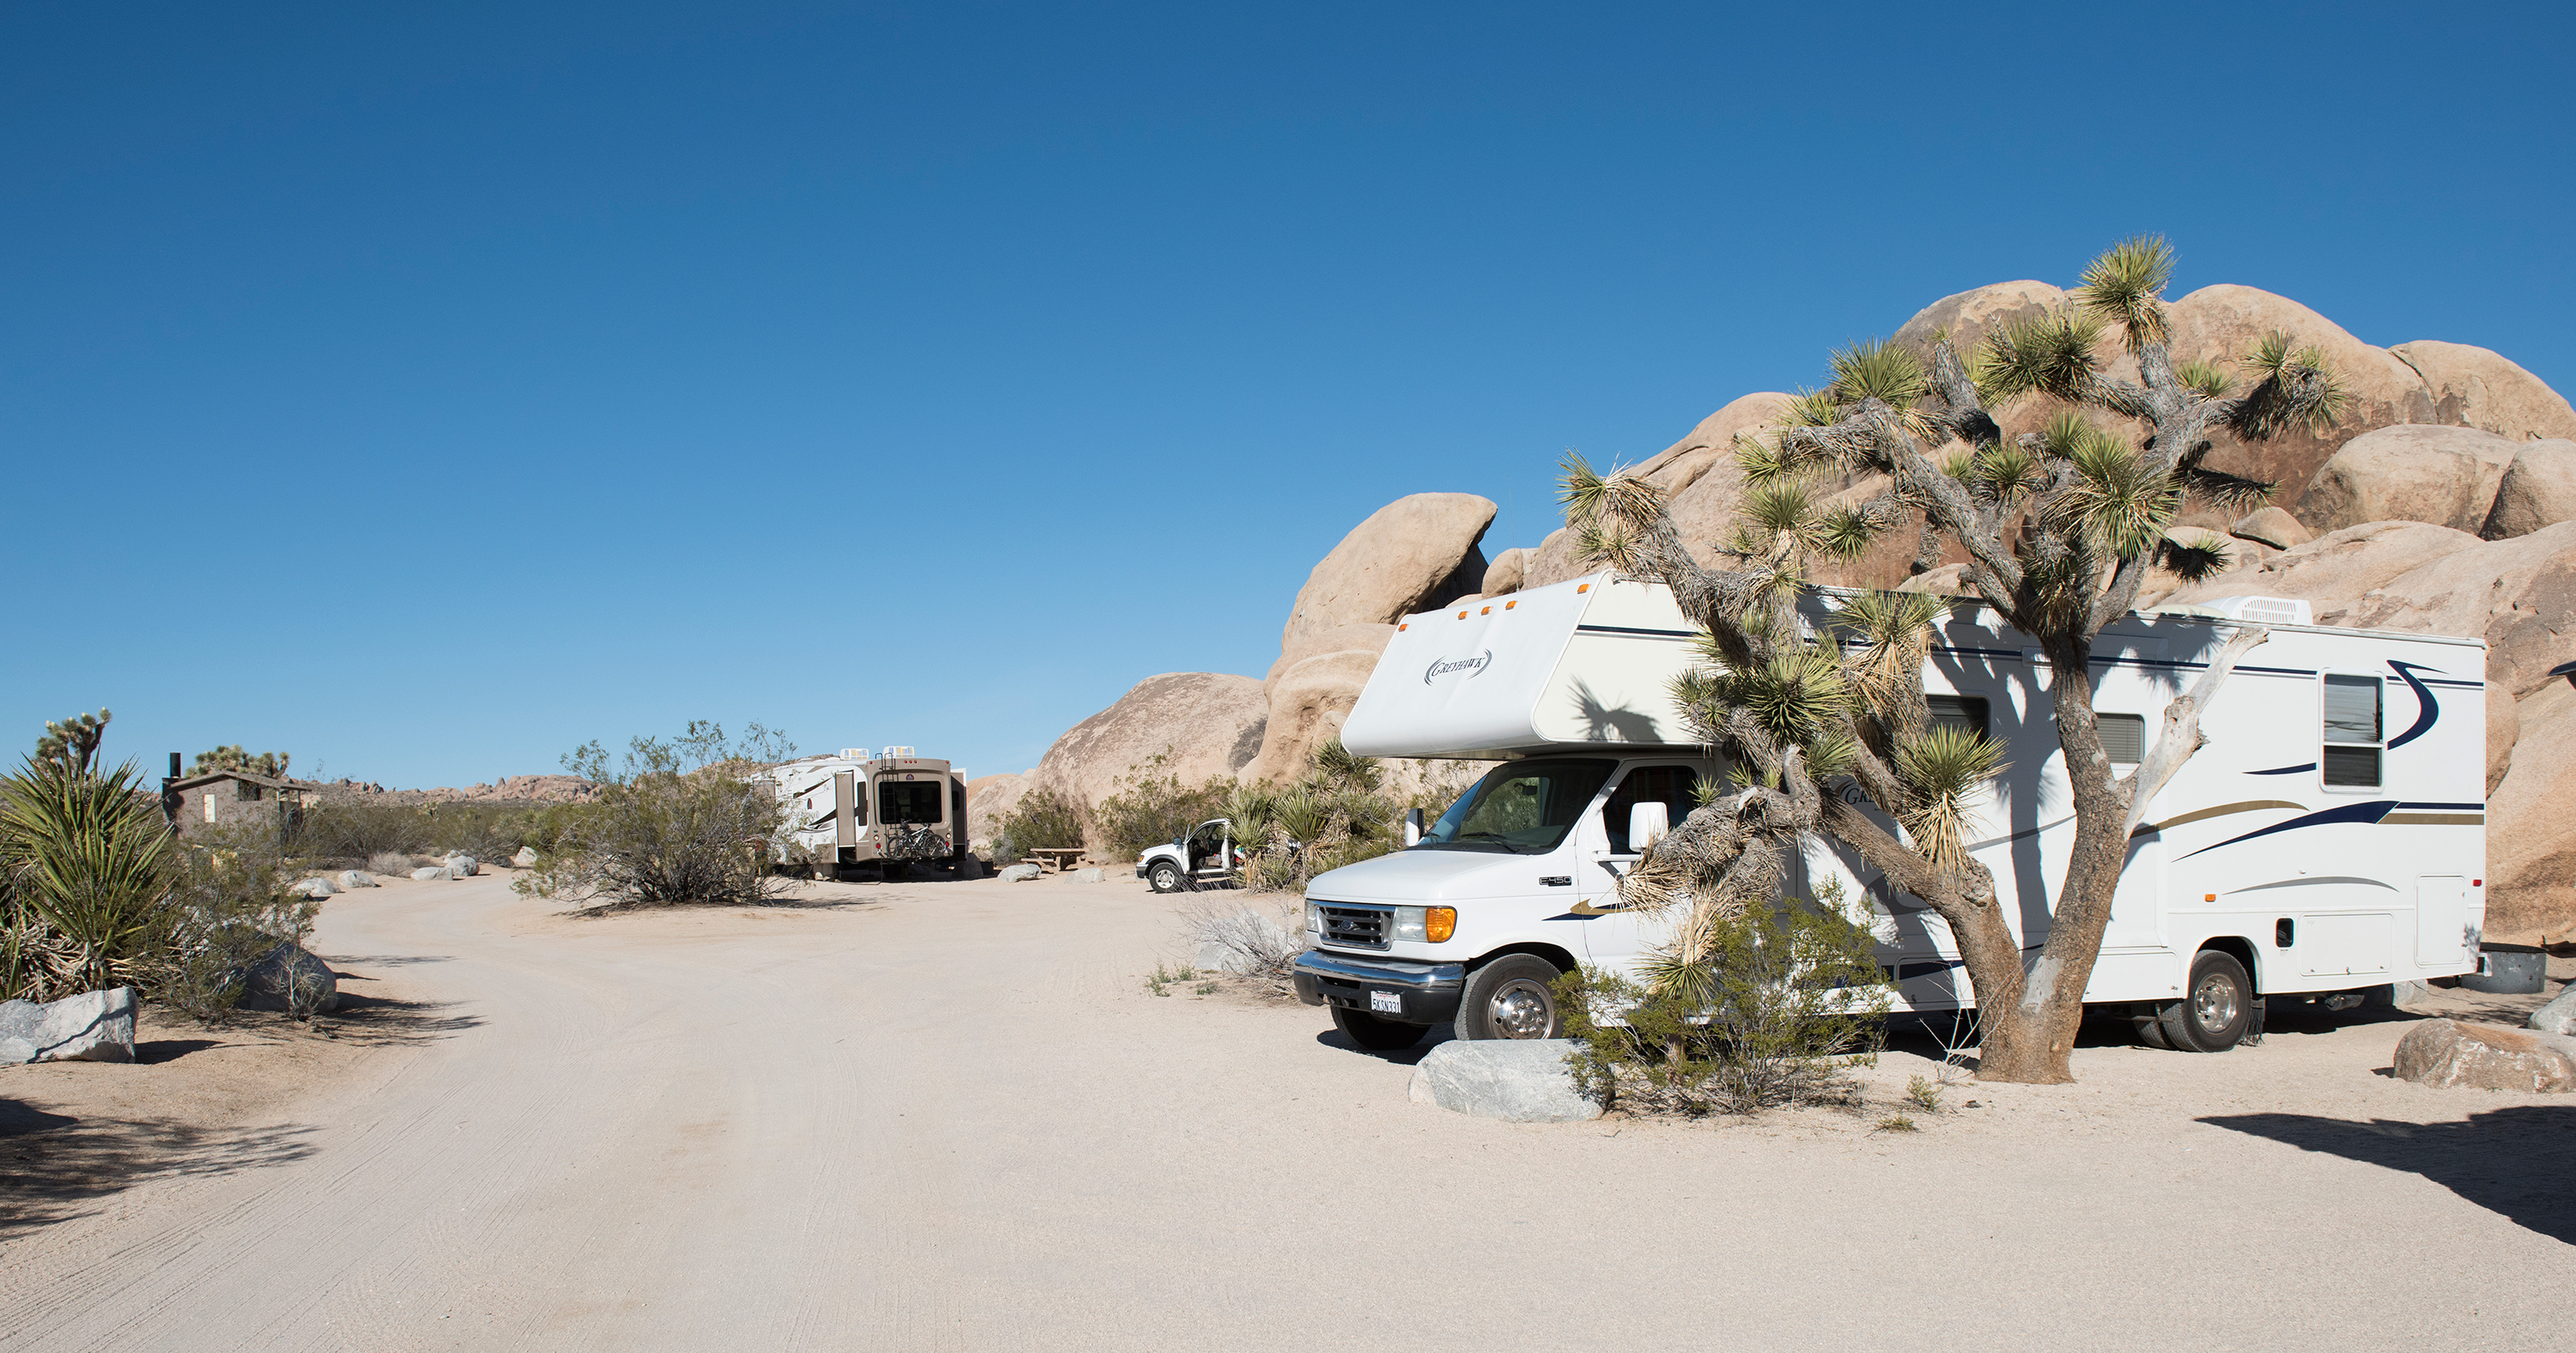 belle campground - joshua tree national park (u.s. national park